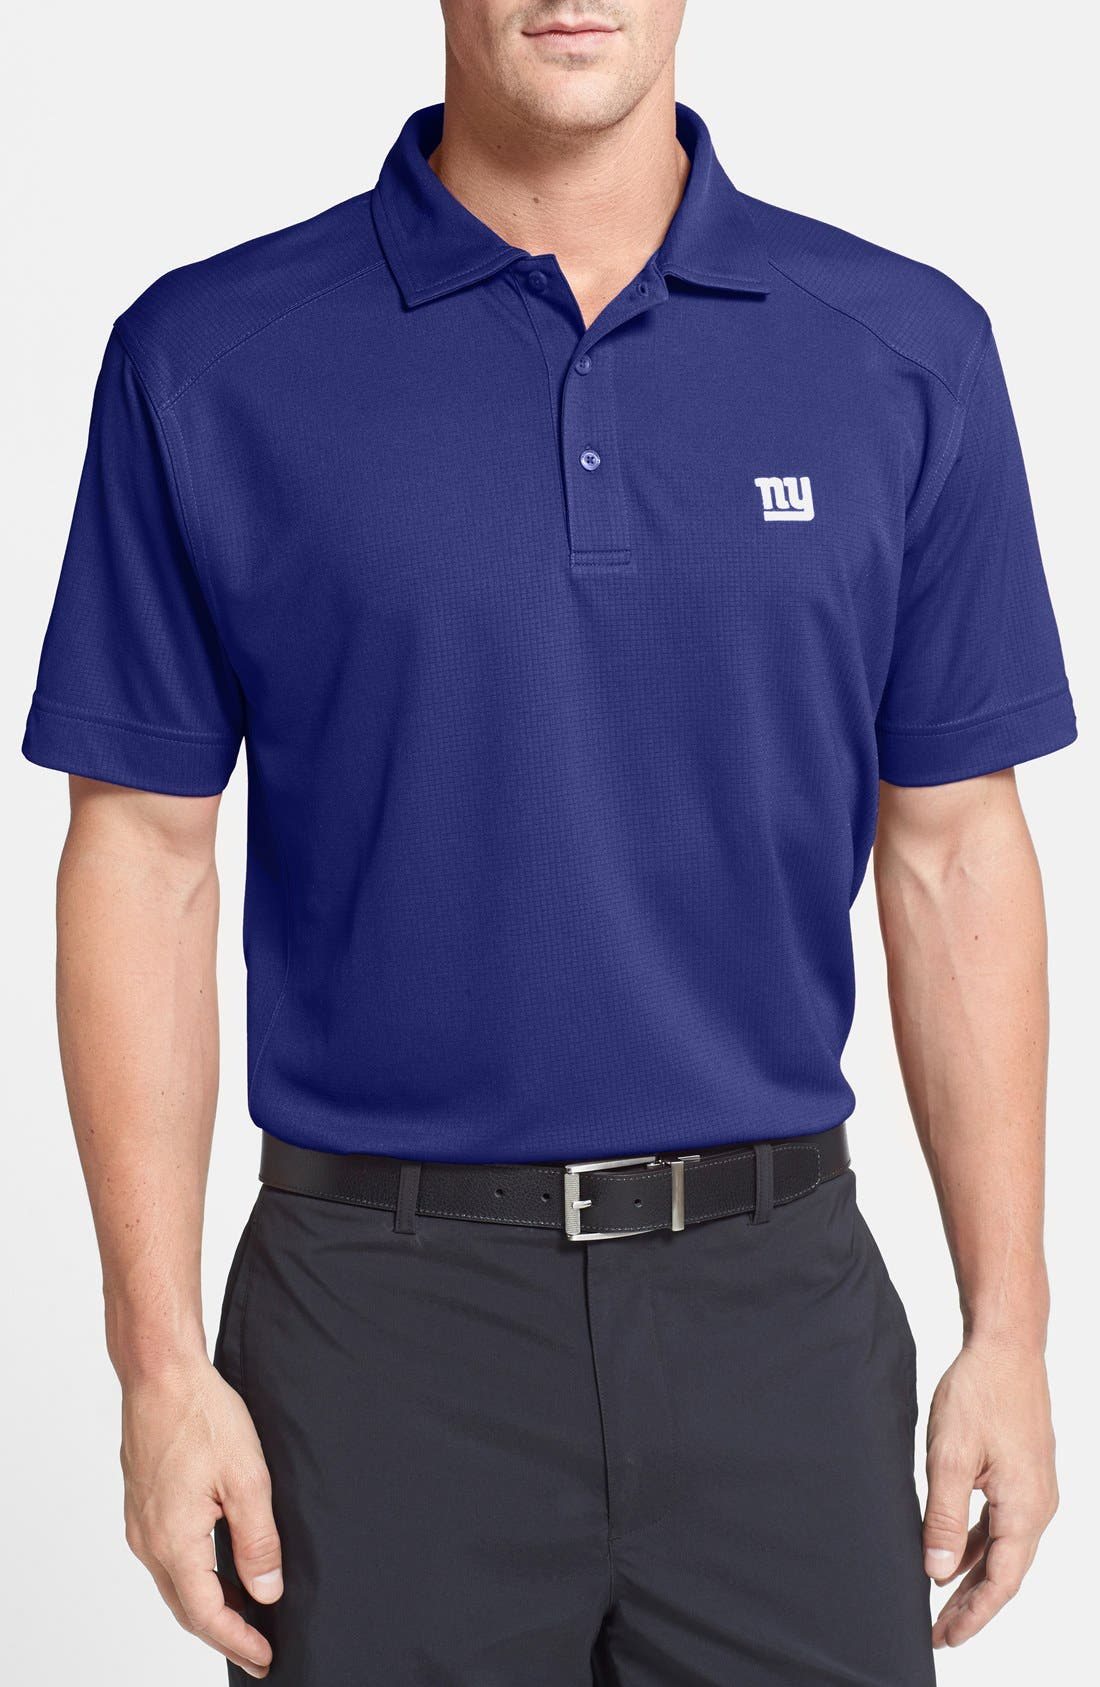 Cutter & Buck 'New York Giants - Genre' DryTec Moisture Wicking Polo